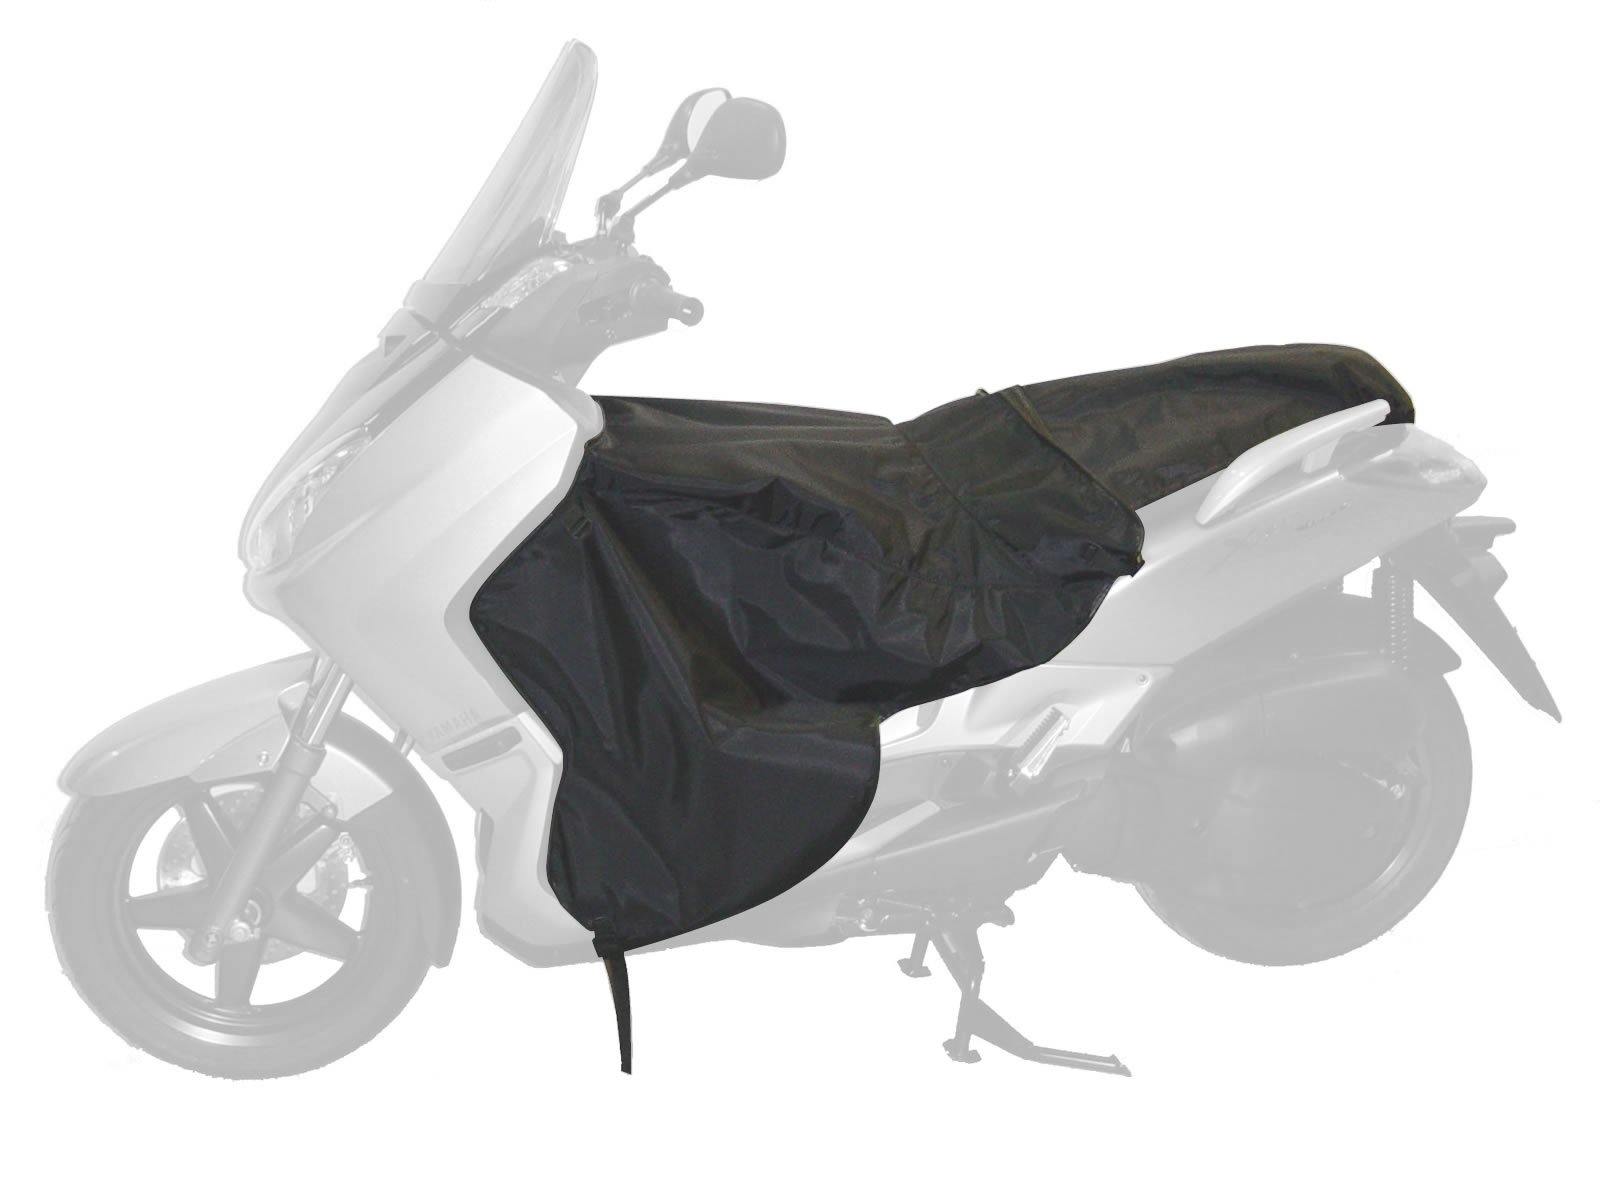 Coprigambe TAB5098 - HONDA S-WING 125